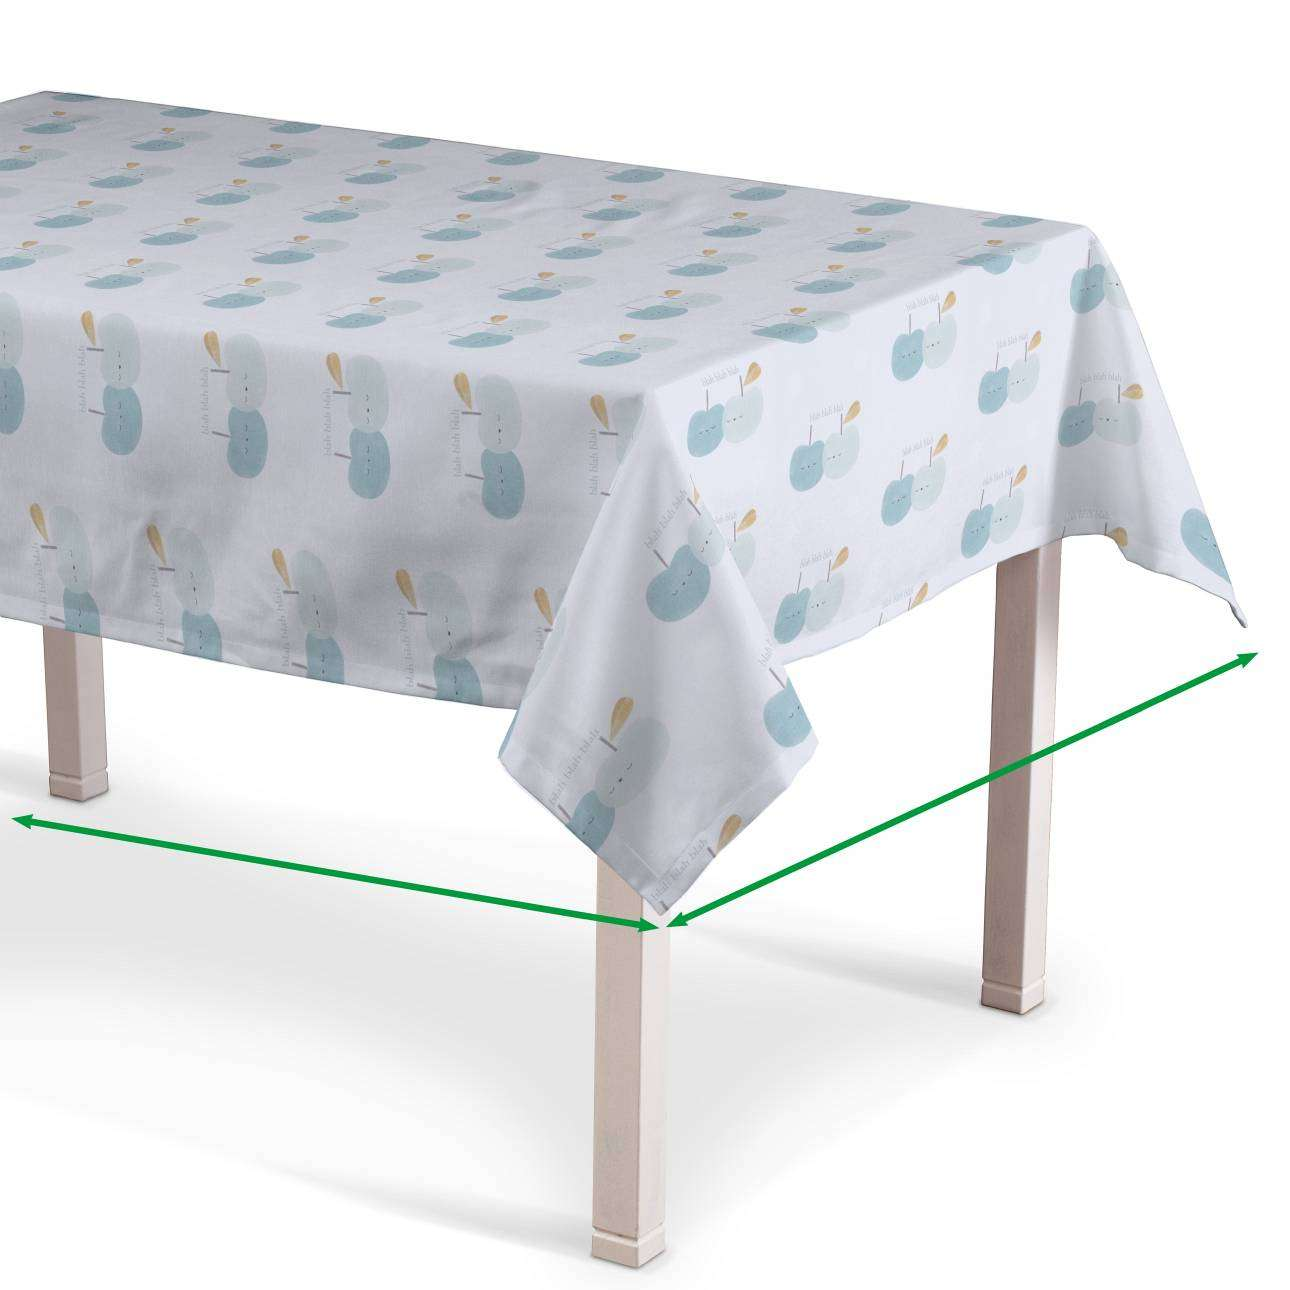 Rectangular tablecloth in collection Apanona, fabric: 151-02